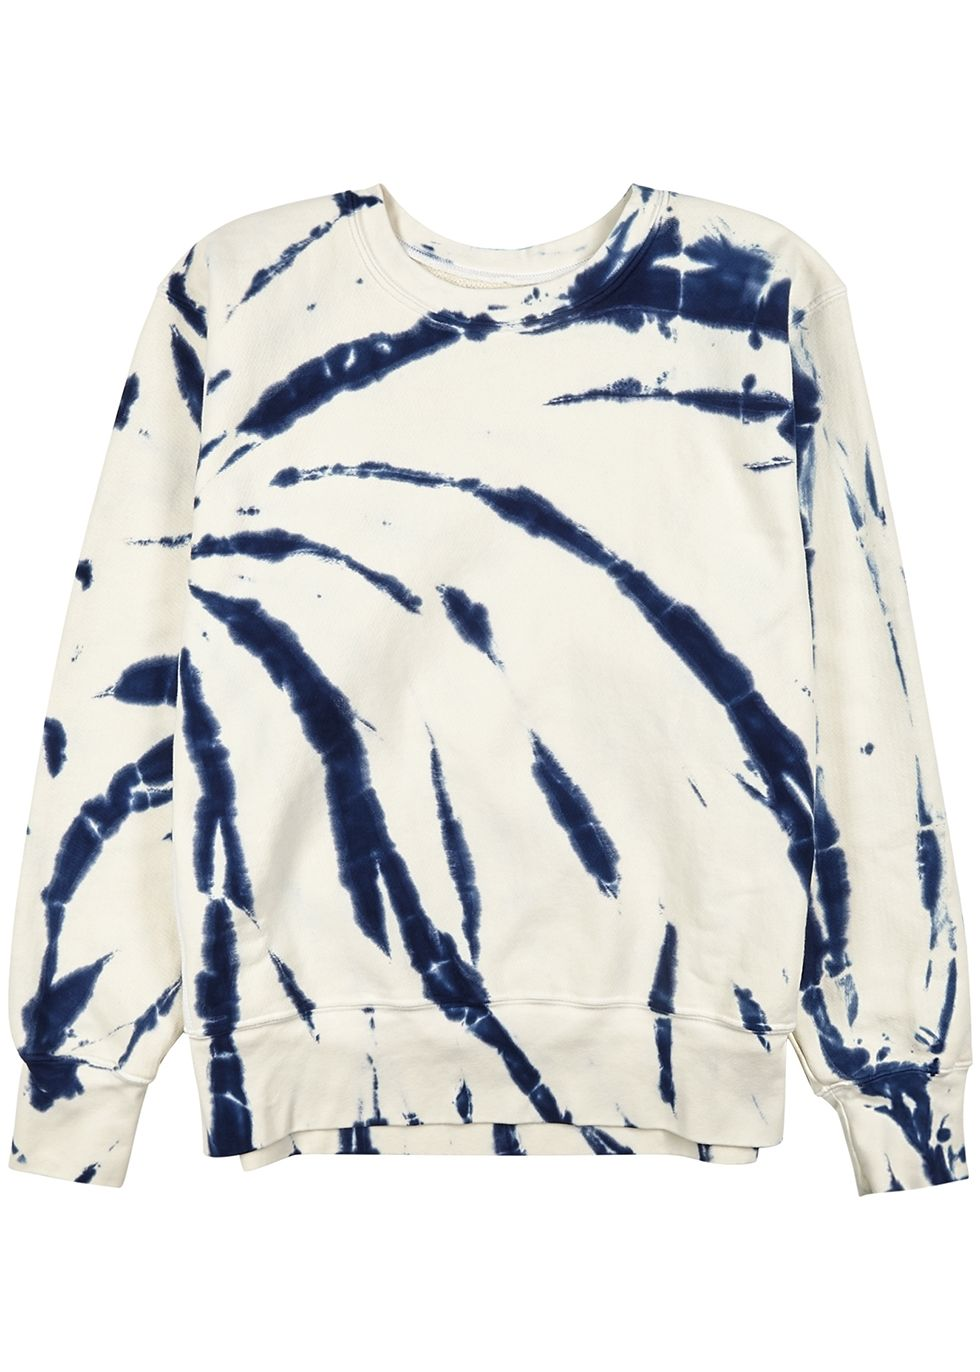 Tie-dye cotton sweatshirt by LES TIEN, available on harveynichols.com for $425 Kendall Jenner Top Exact Product